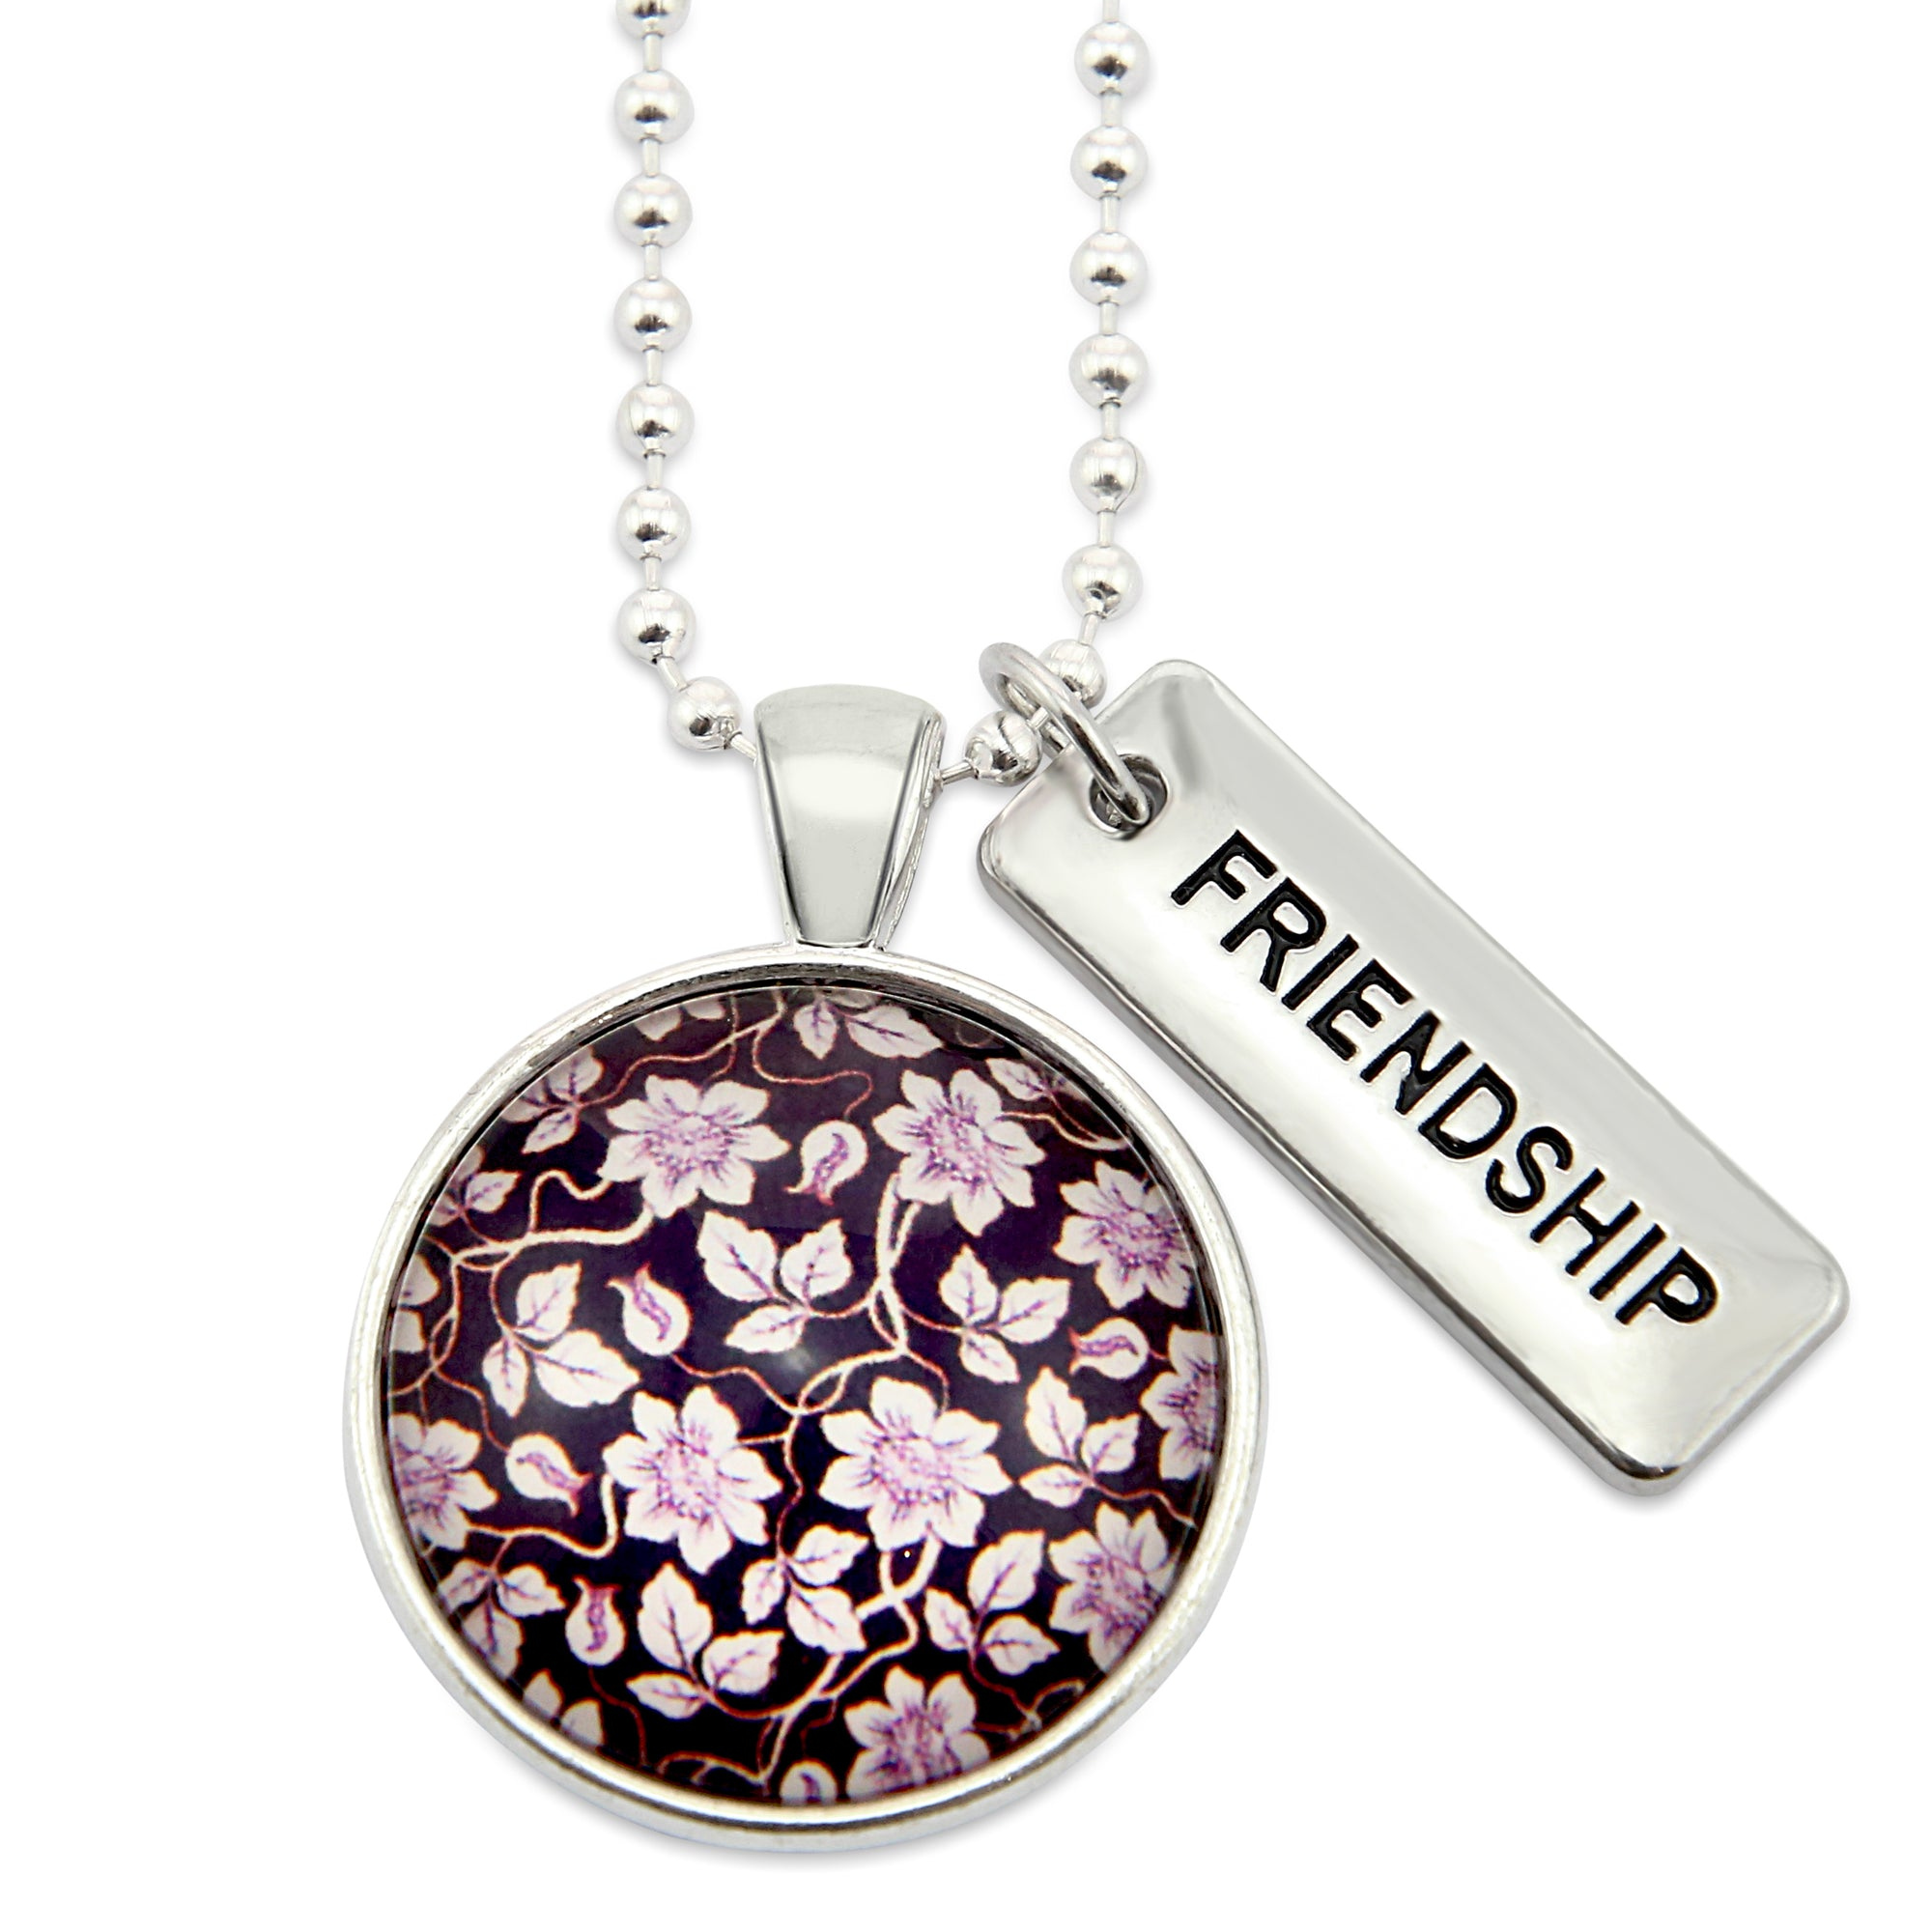 Heart & Soul Collection ' FRIENDSHIP ' Silver Necklace - Deep Purple Divine (11112)